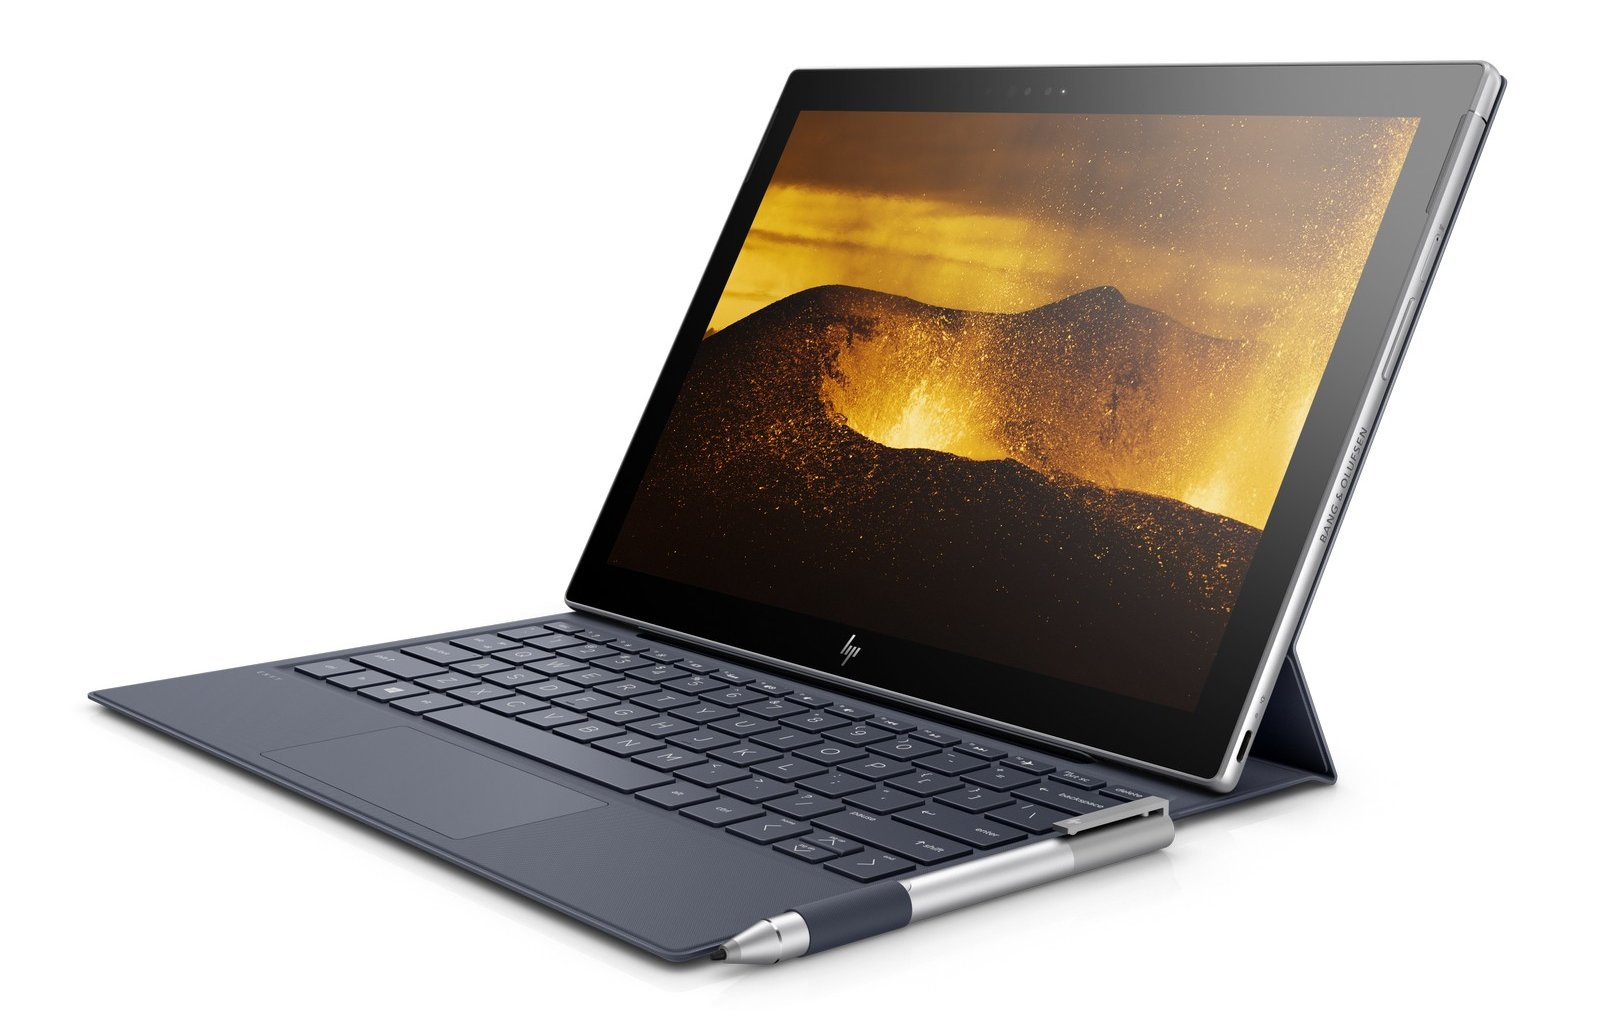 CES 2018: HP introduces Spectre x360 15, Envy X2 Hybrid and more